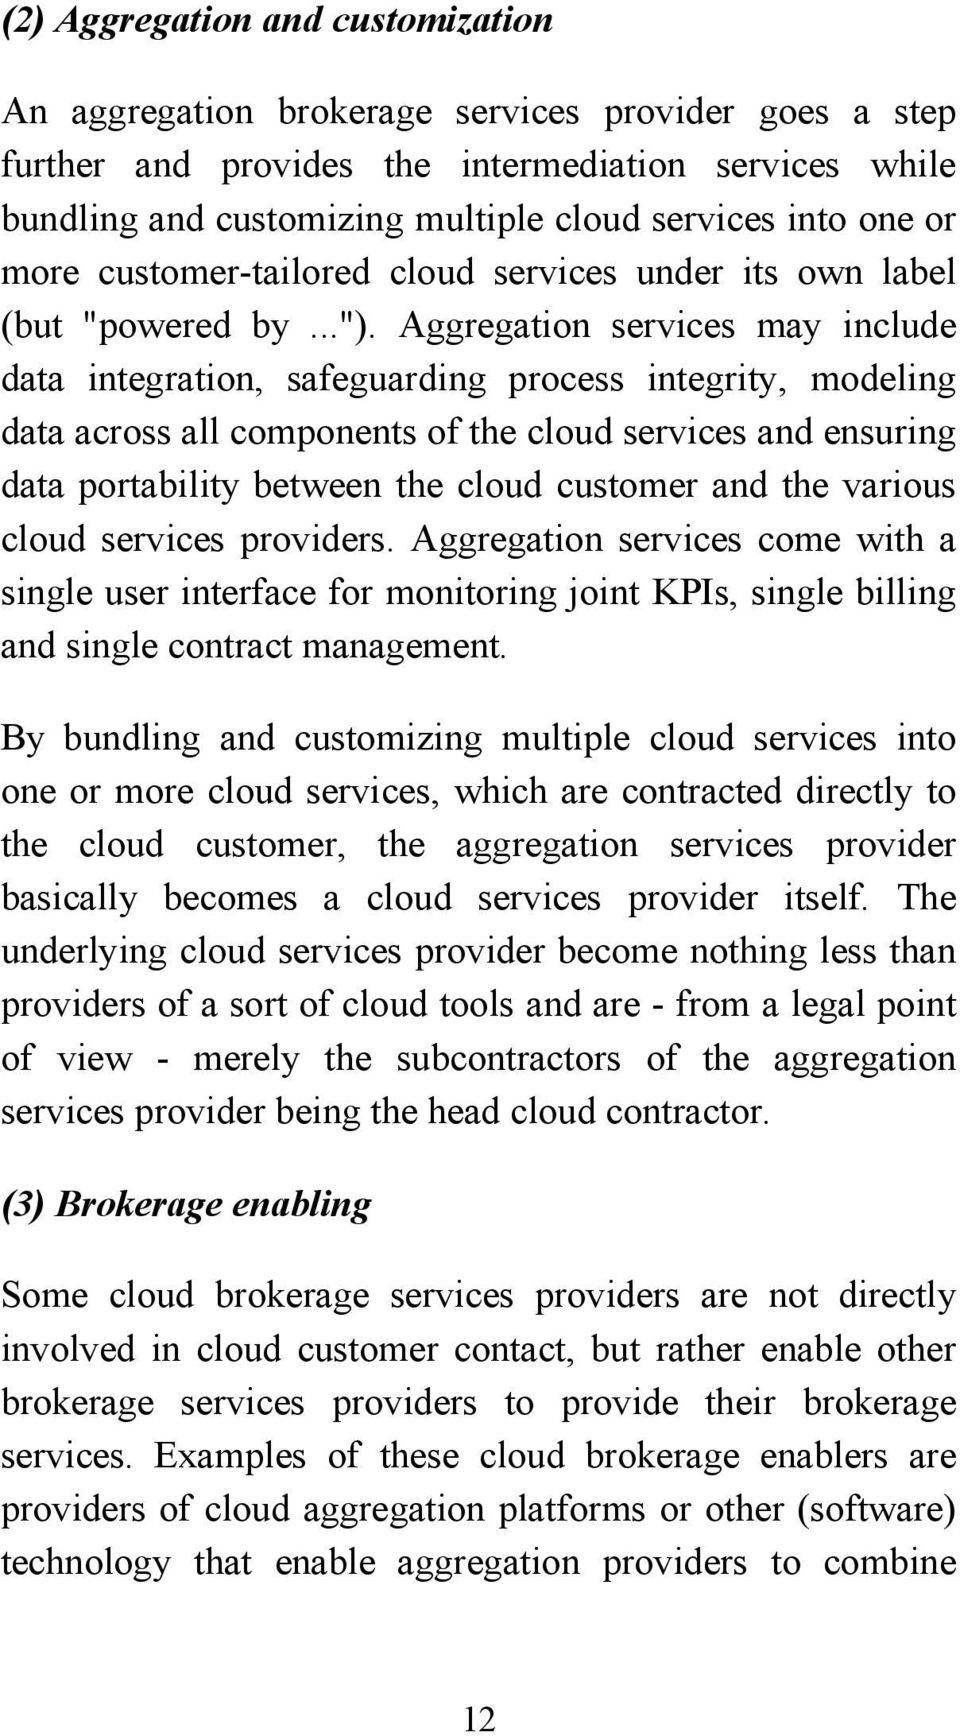 Aggregation services may include data integration, safeguarding process integrity, modeling data across all components of the cloud services and ensuring data portability between the cloud customer